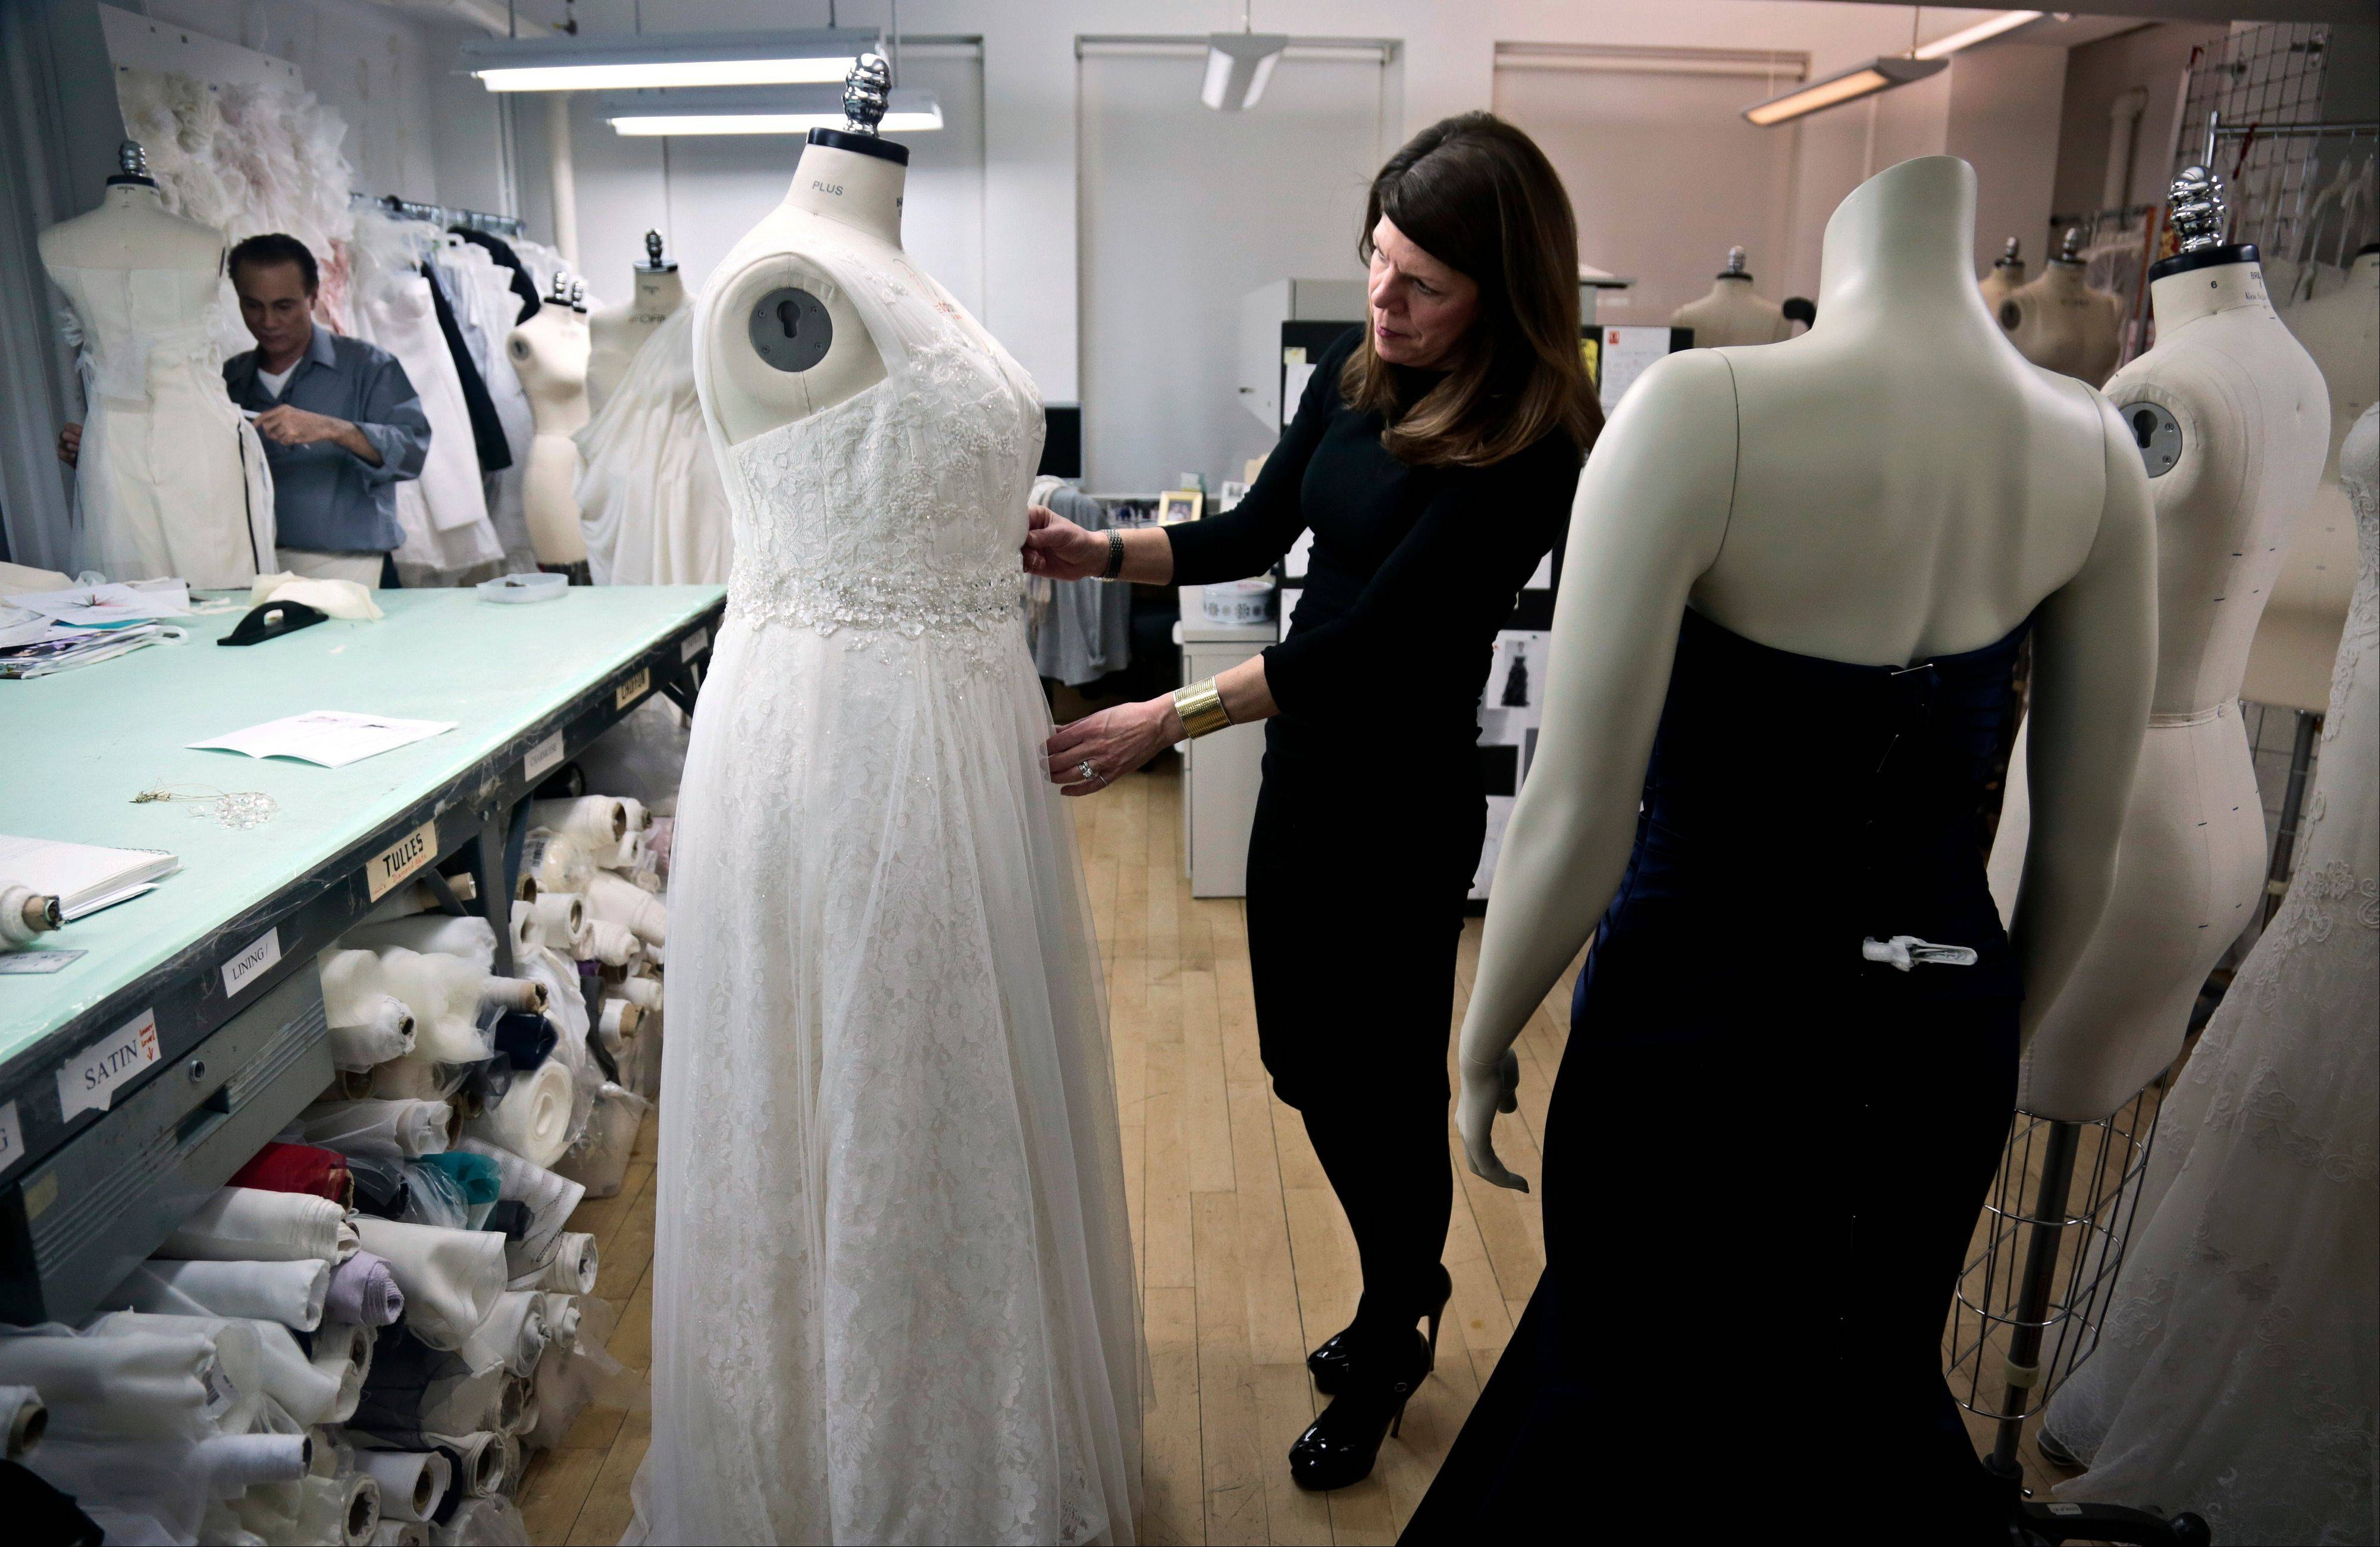 David's Bridal senior vice president Michele von Plato, right, arranges a dress on a plus-size mannequin in New York. David's Bridal, the nation's largest bridal chain, started changing its fit mannequins used to create gowns to reflect the average body.